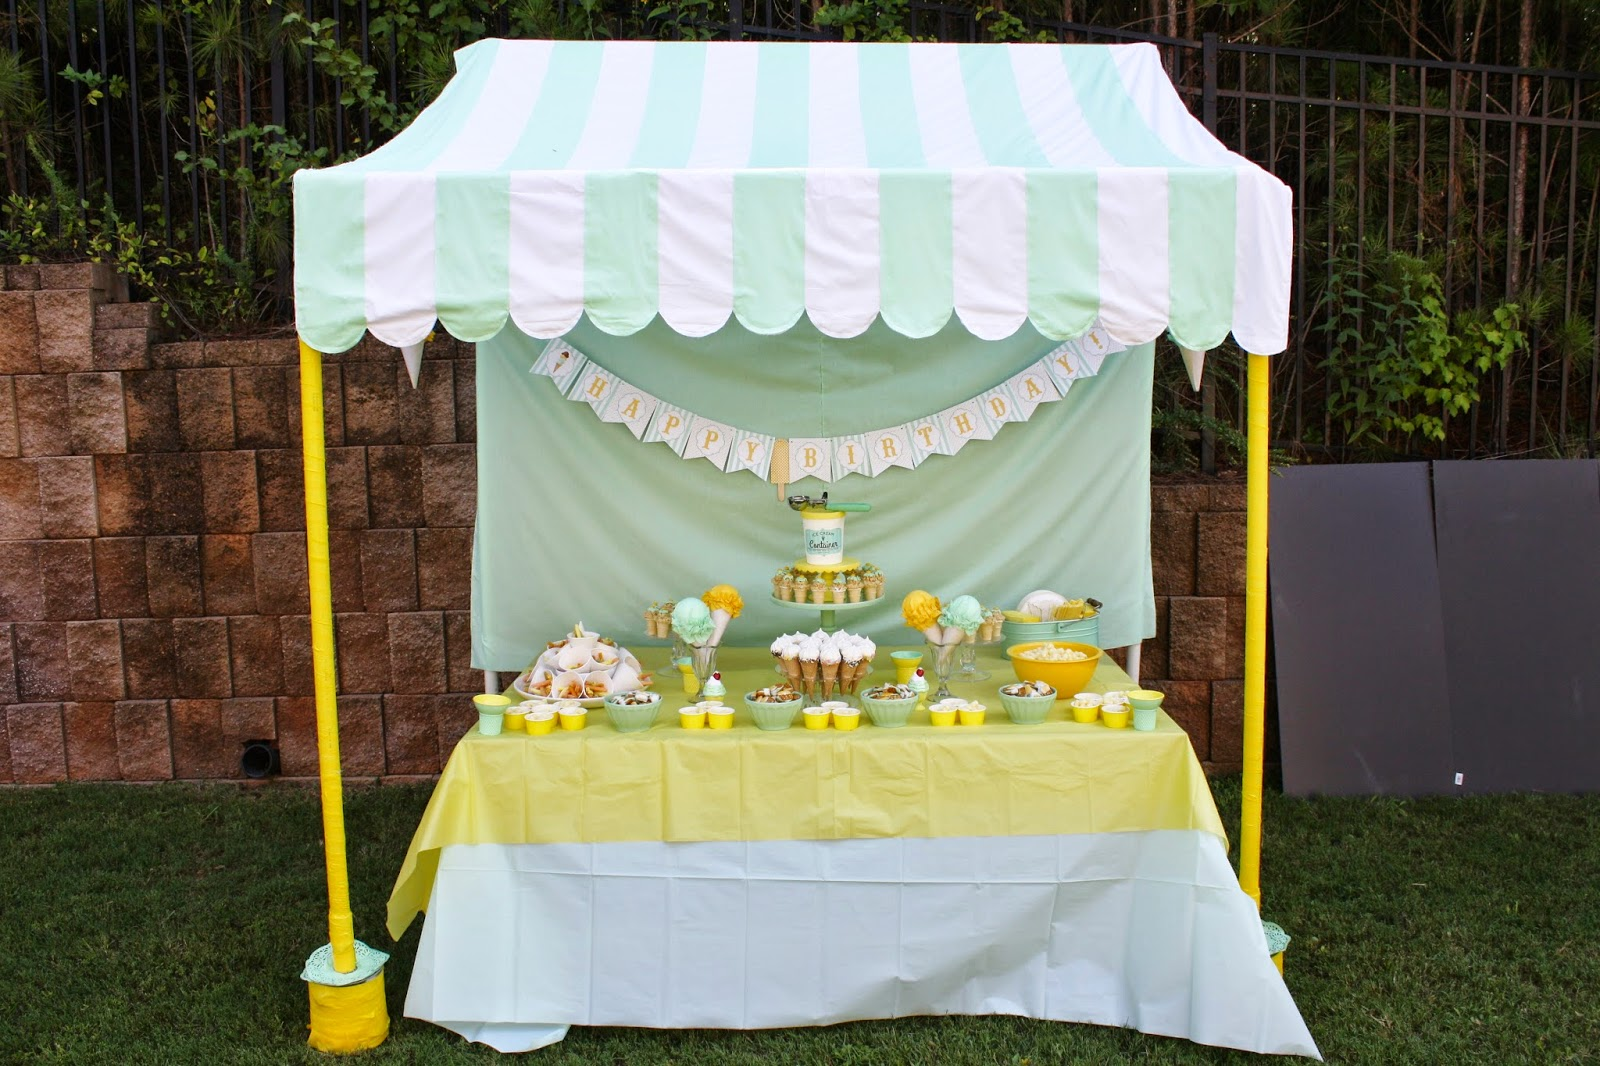 Ice Cream Party Dessert Table with Canopy